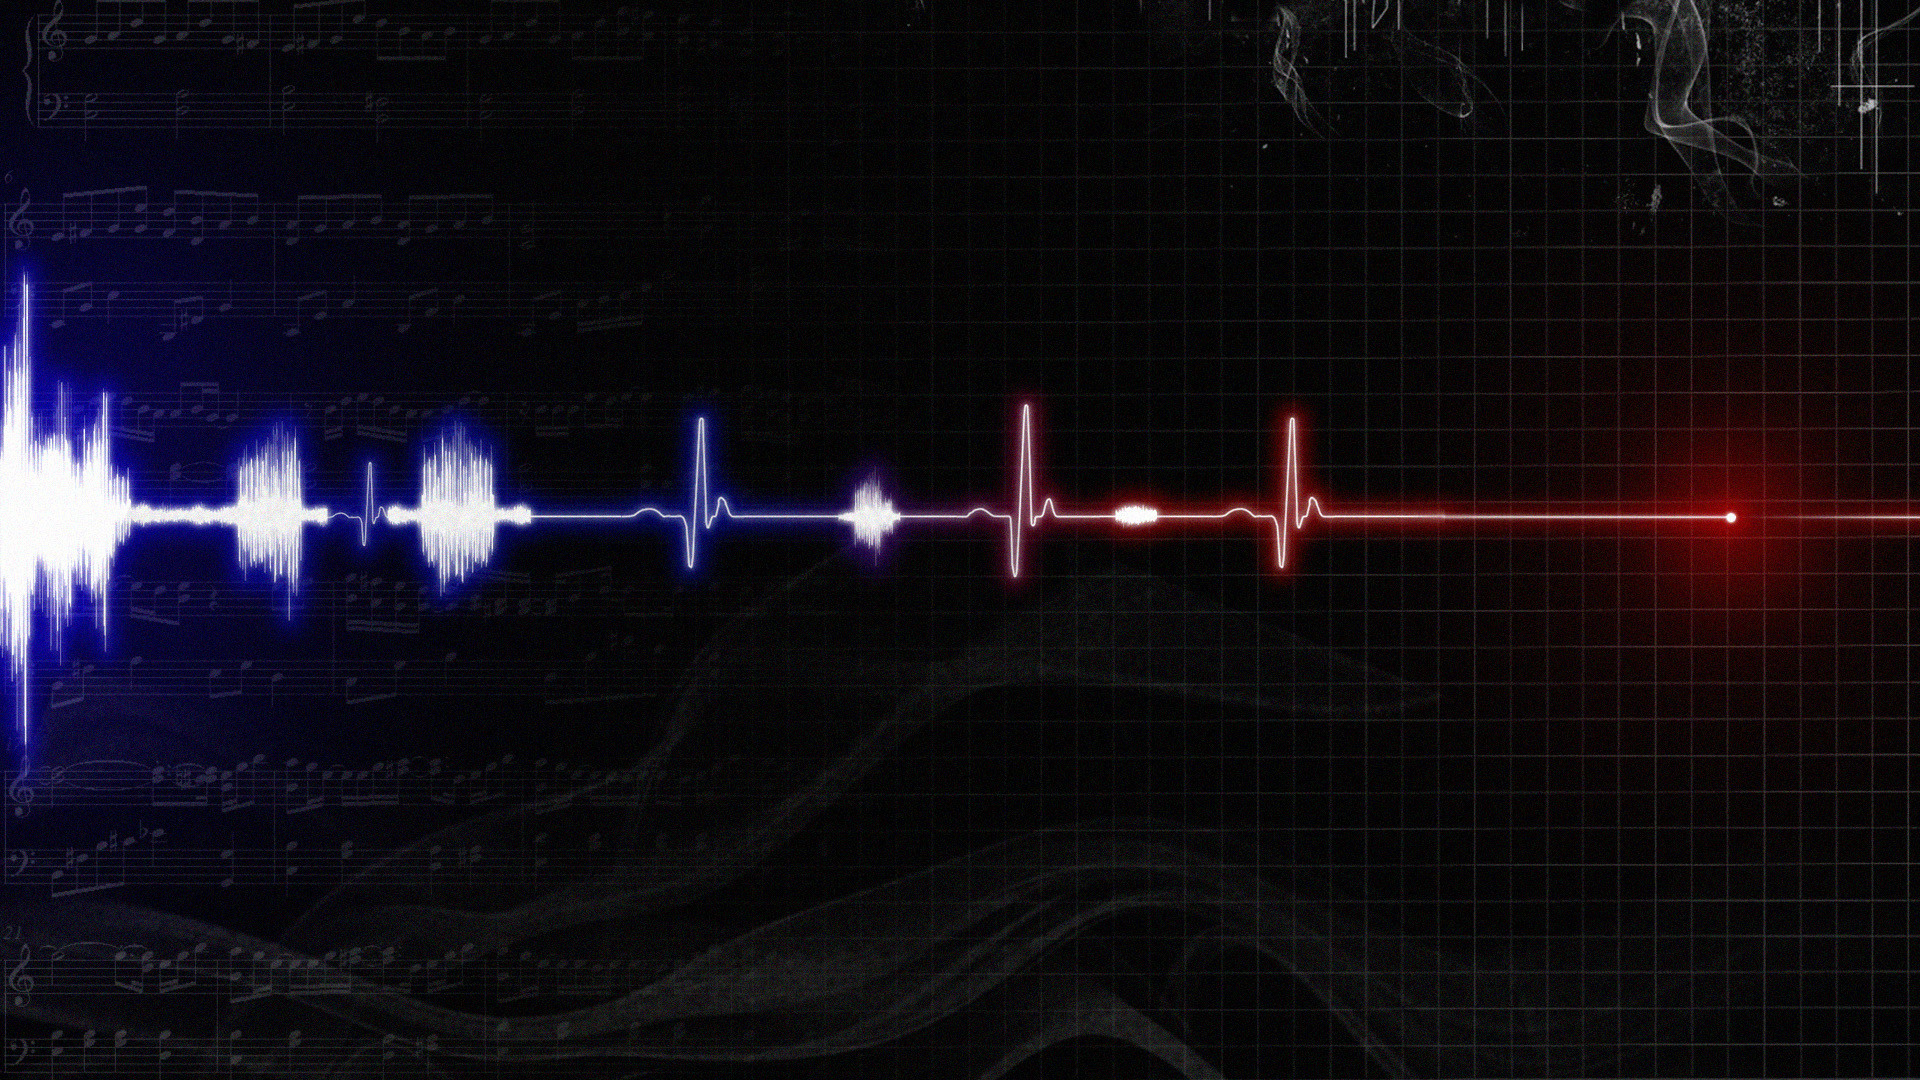 Explore Music Images, Heart Beat, and more!